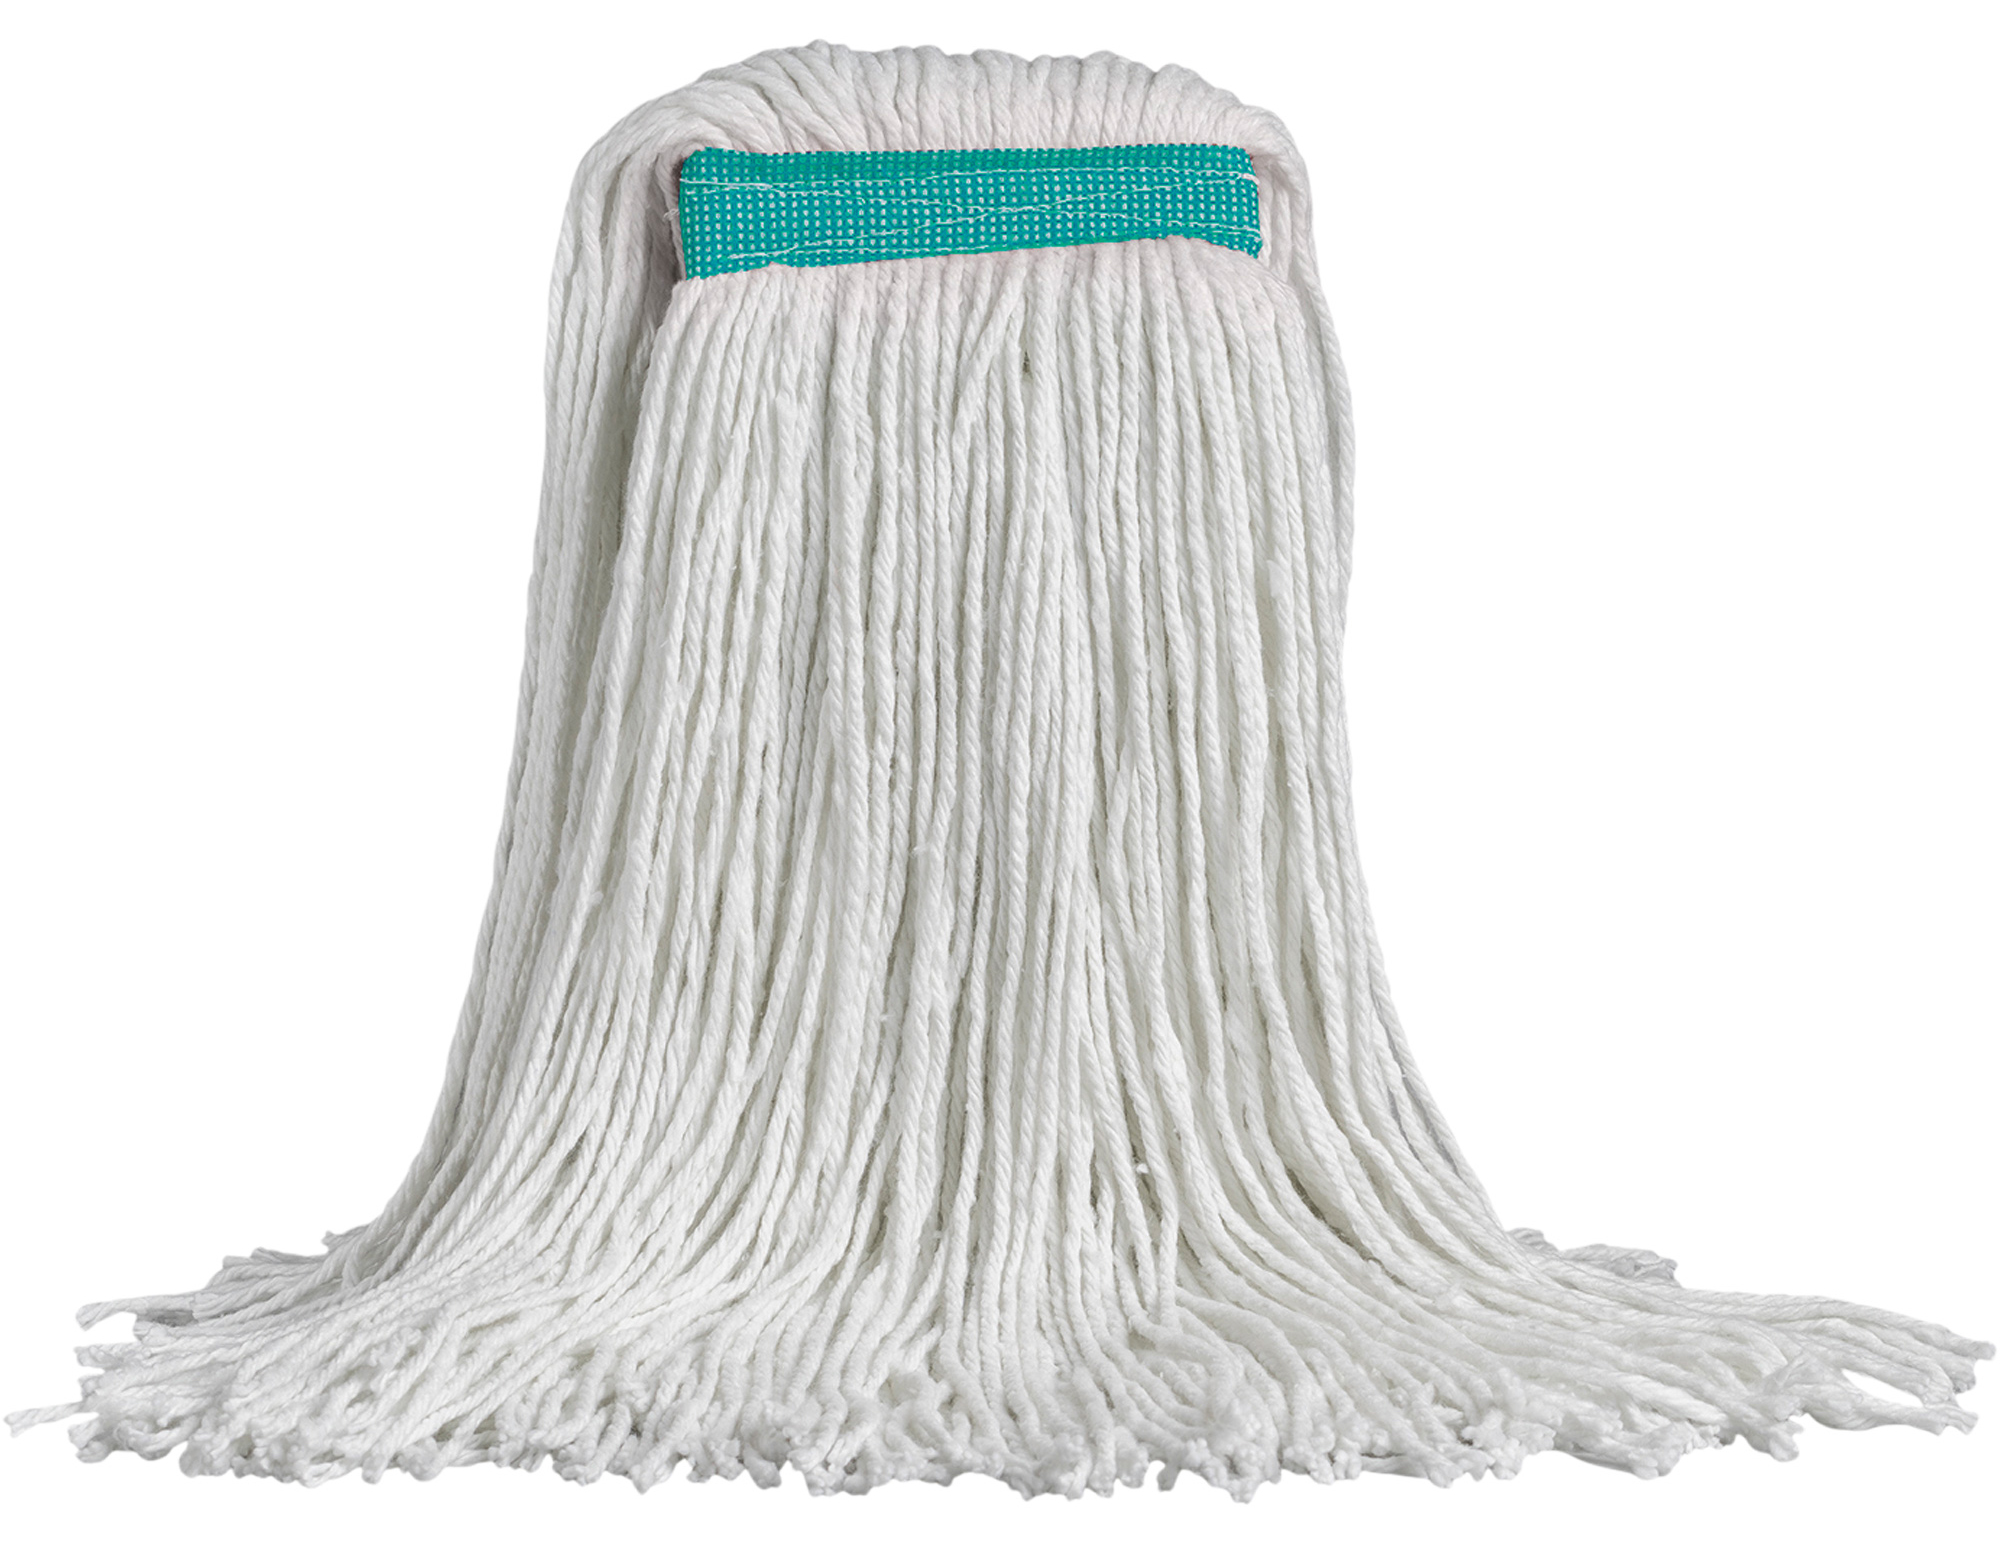 Synray™ Cut End, Narrow Band Mop Head 20oz/550g